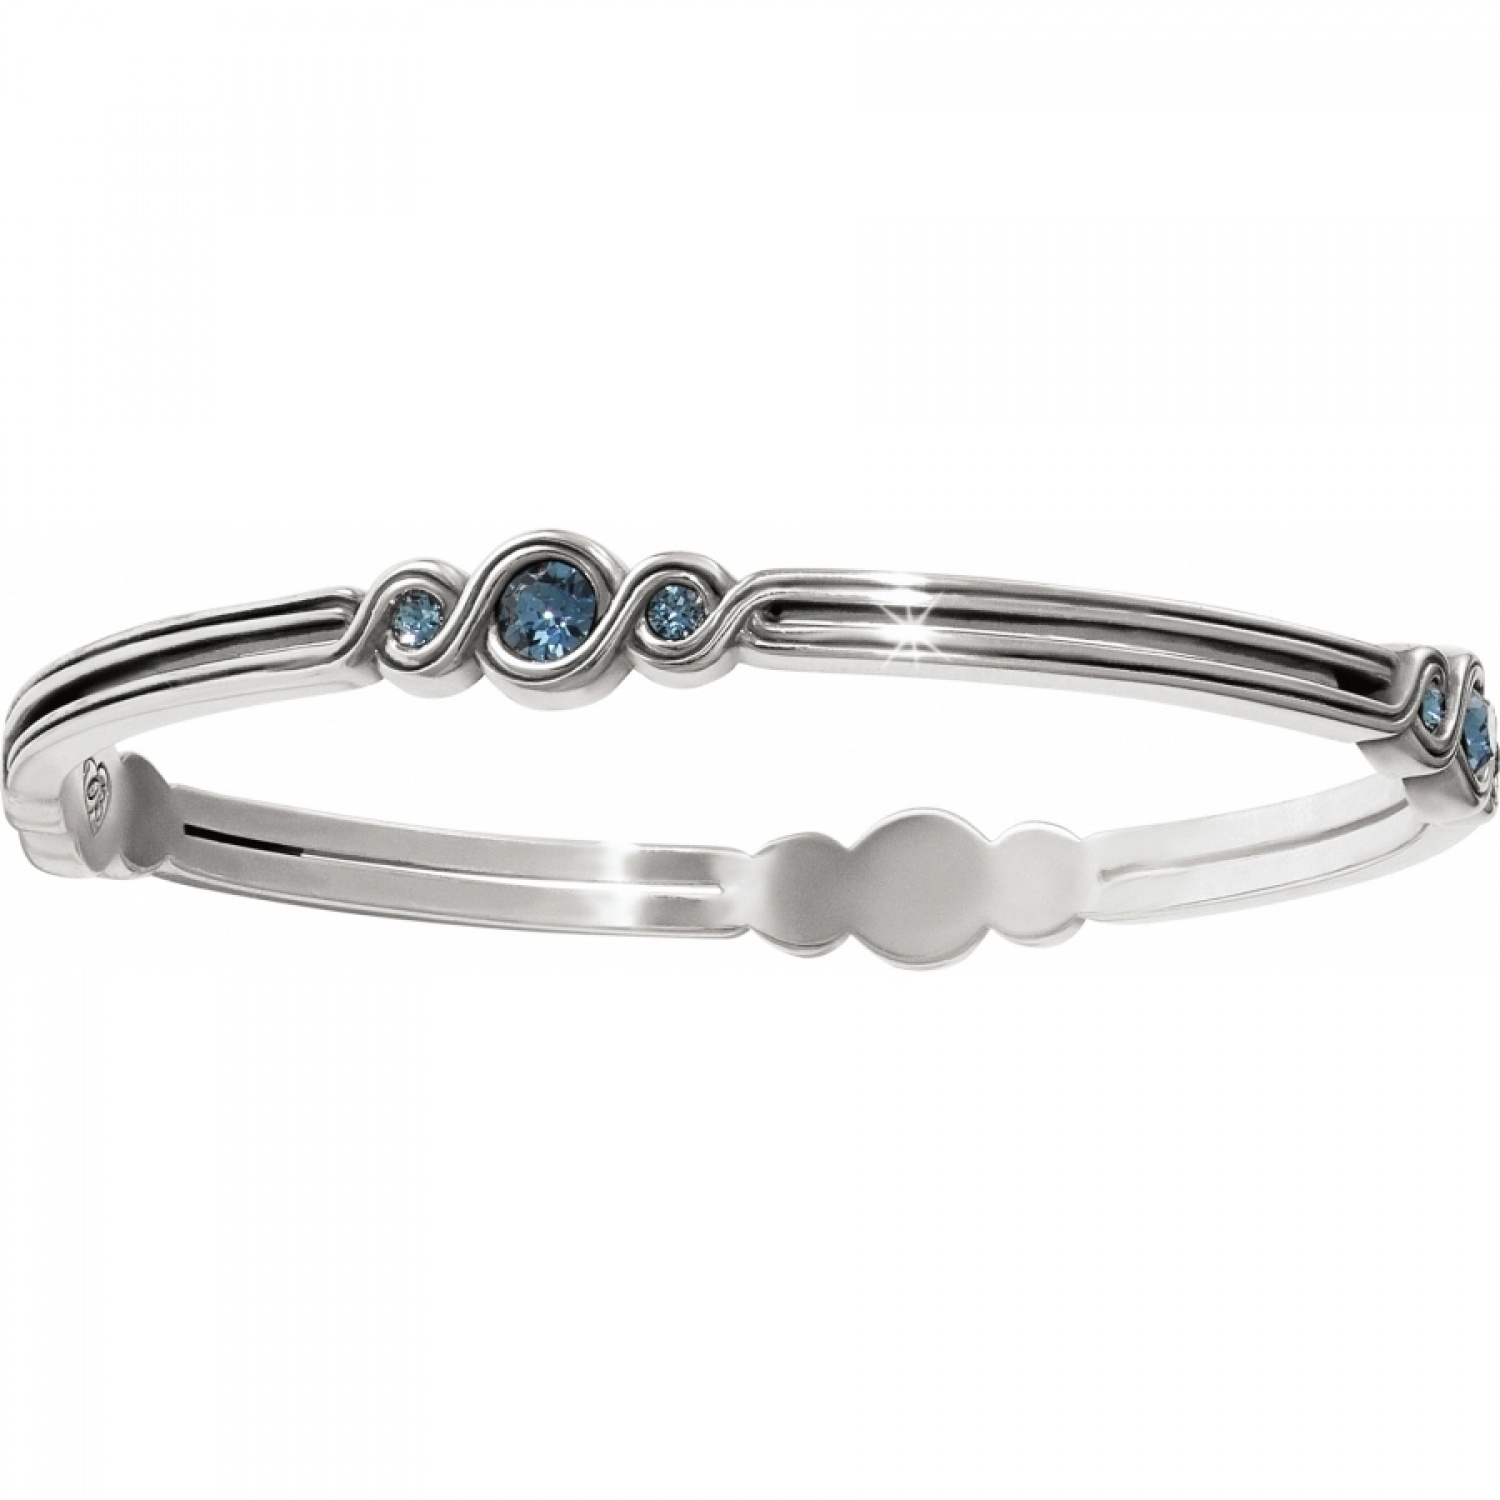 bracelet chain product steel friendship summer silver original infinity stainless